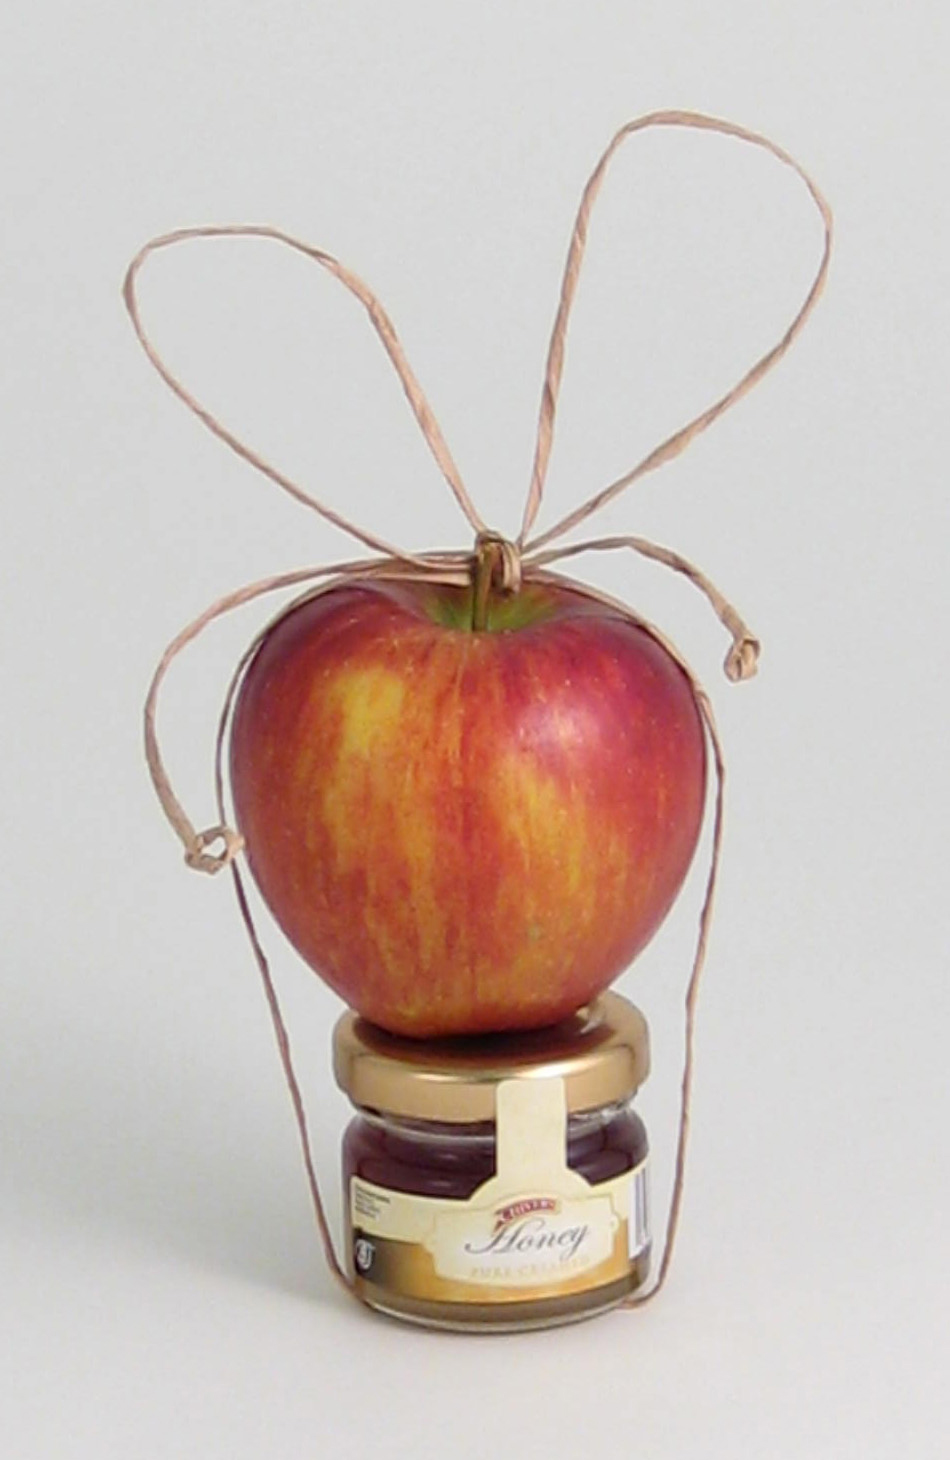 Apple Honey Giftwrap